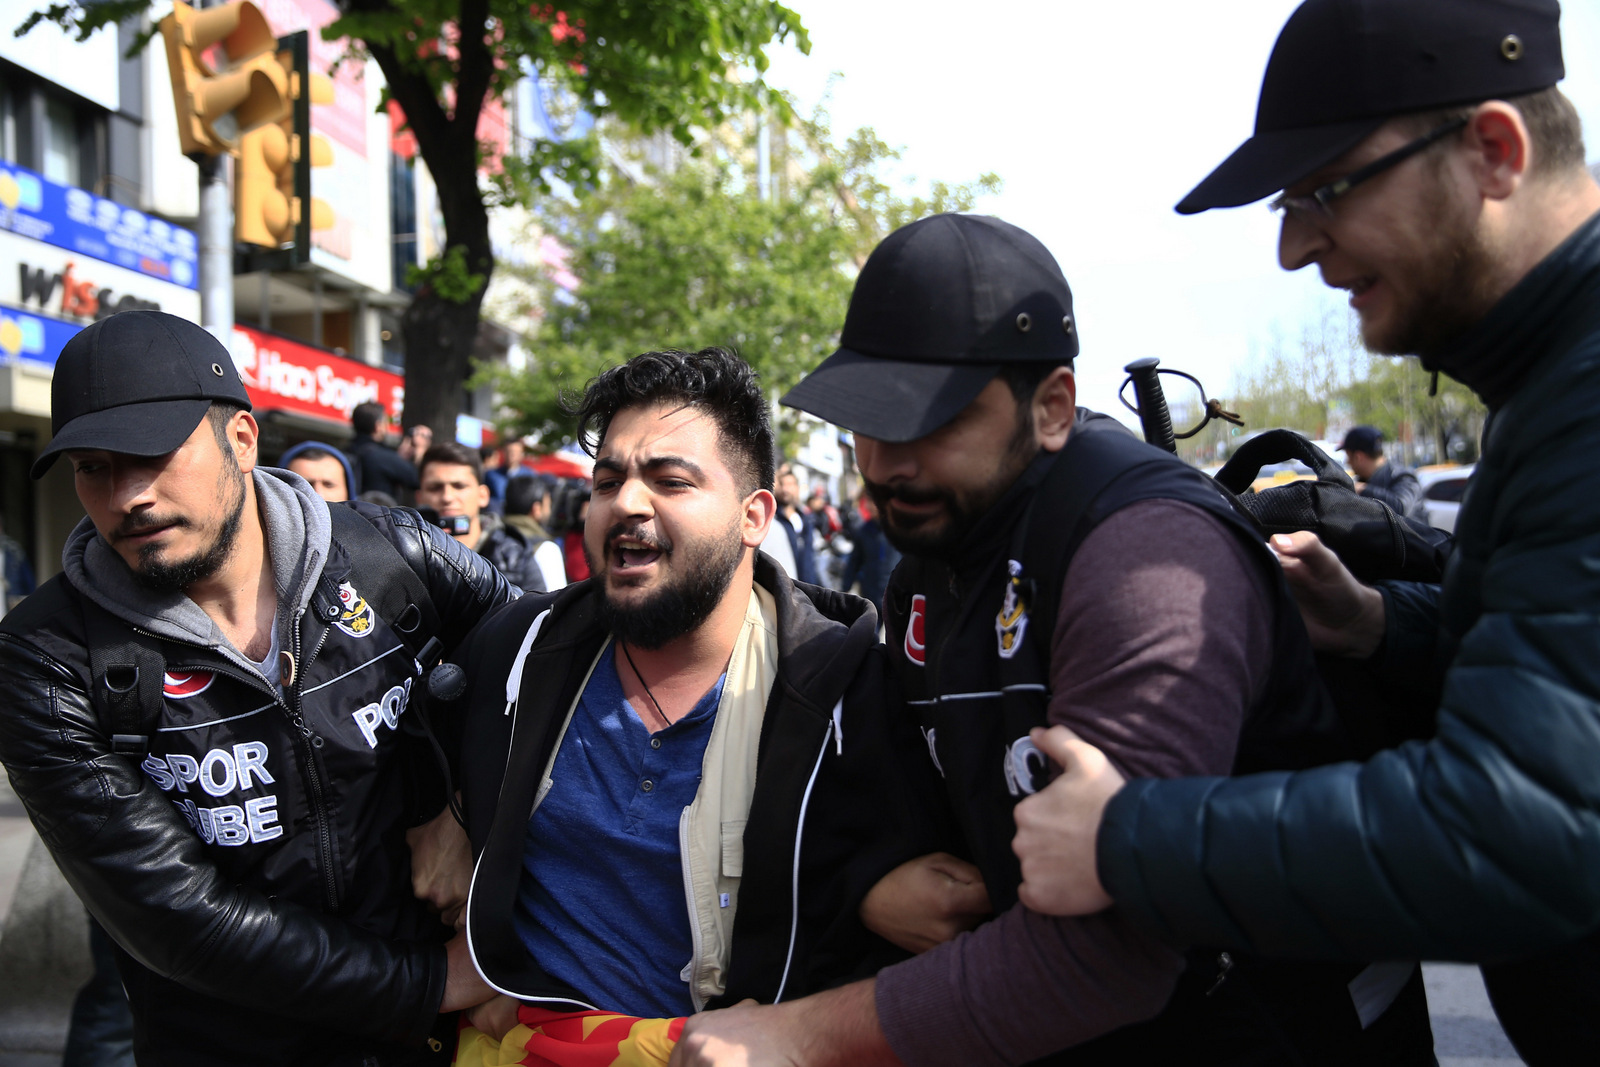 Police arrest demonstrators as they tried to march during May Day, in Istanbul, Monday, May 1, 2017.